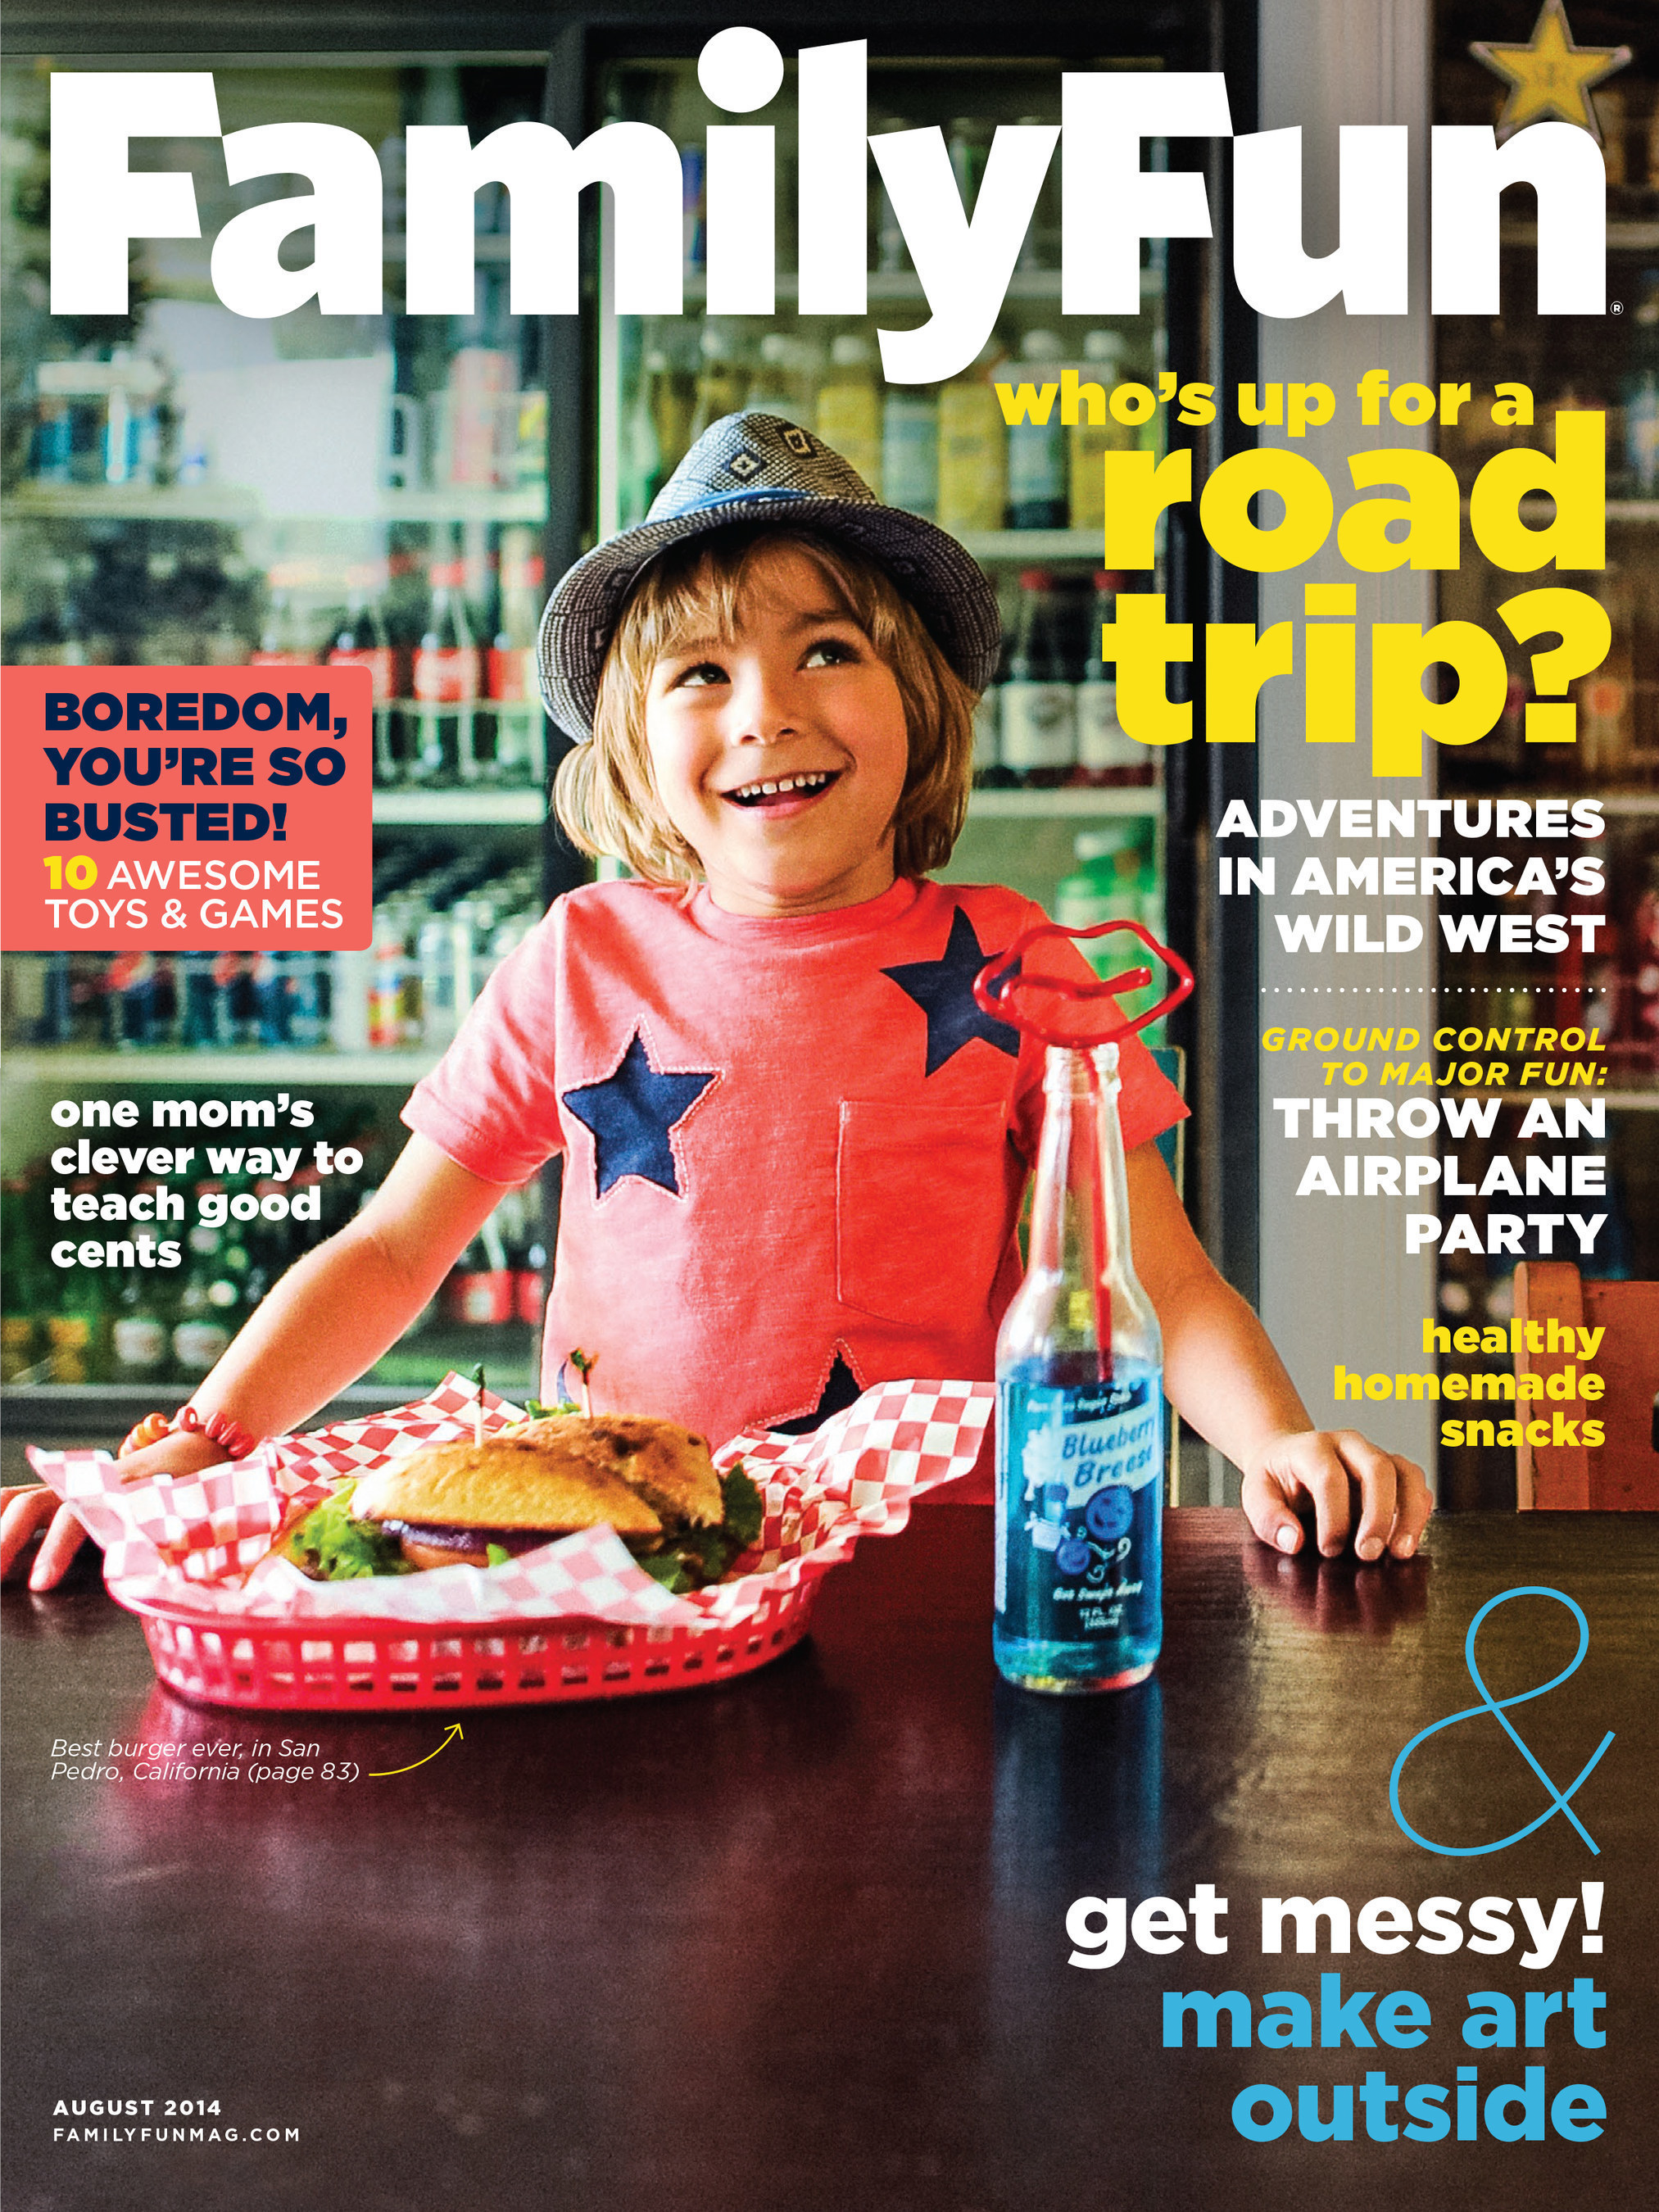 FAMILYFUN MAGAZINE WINS TWO ASME COVER AWARDS FOR AUGUST 2014 COVER